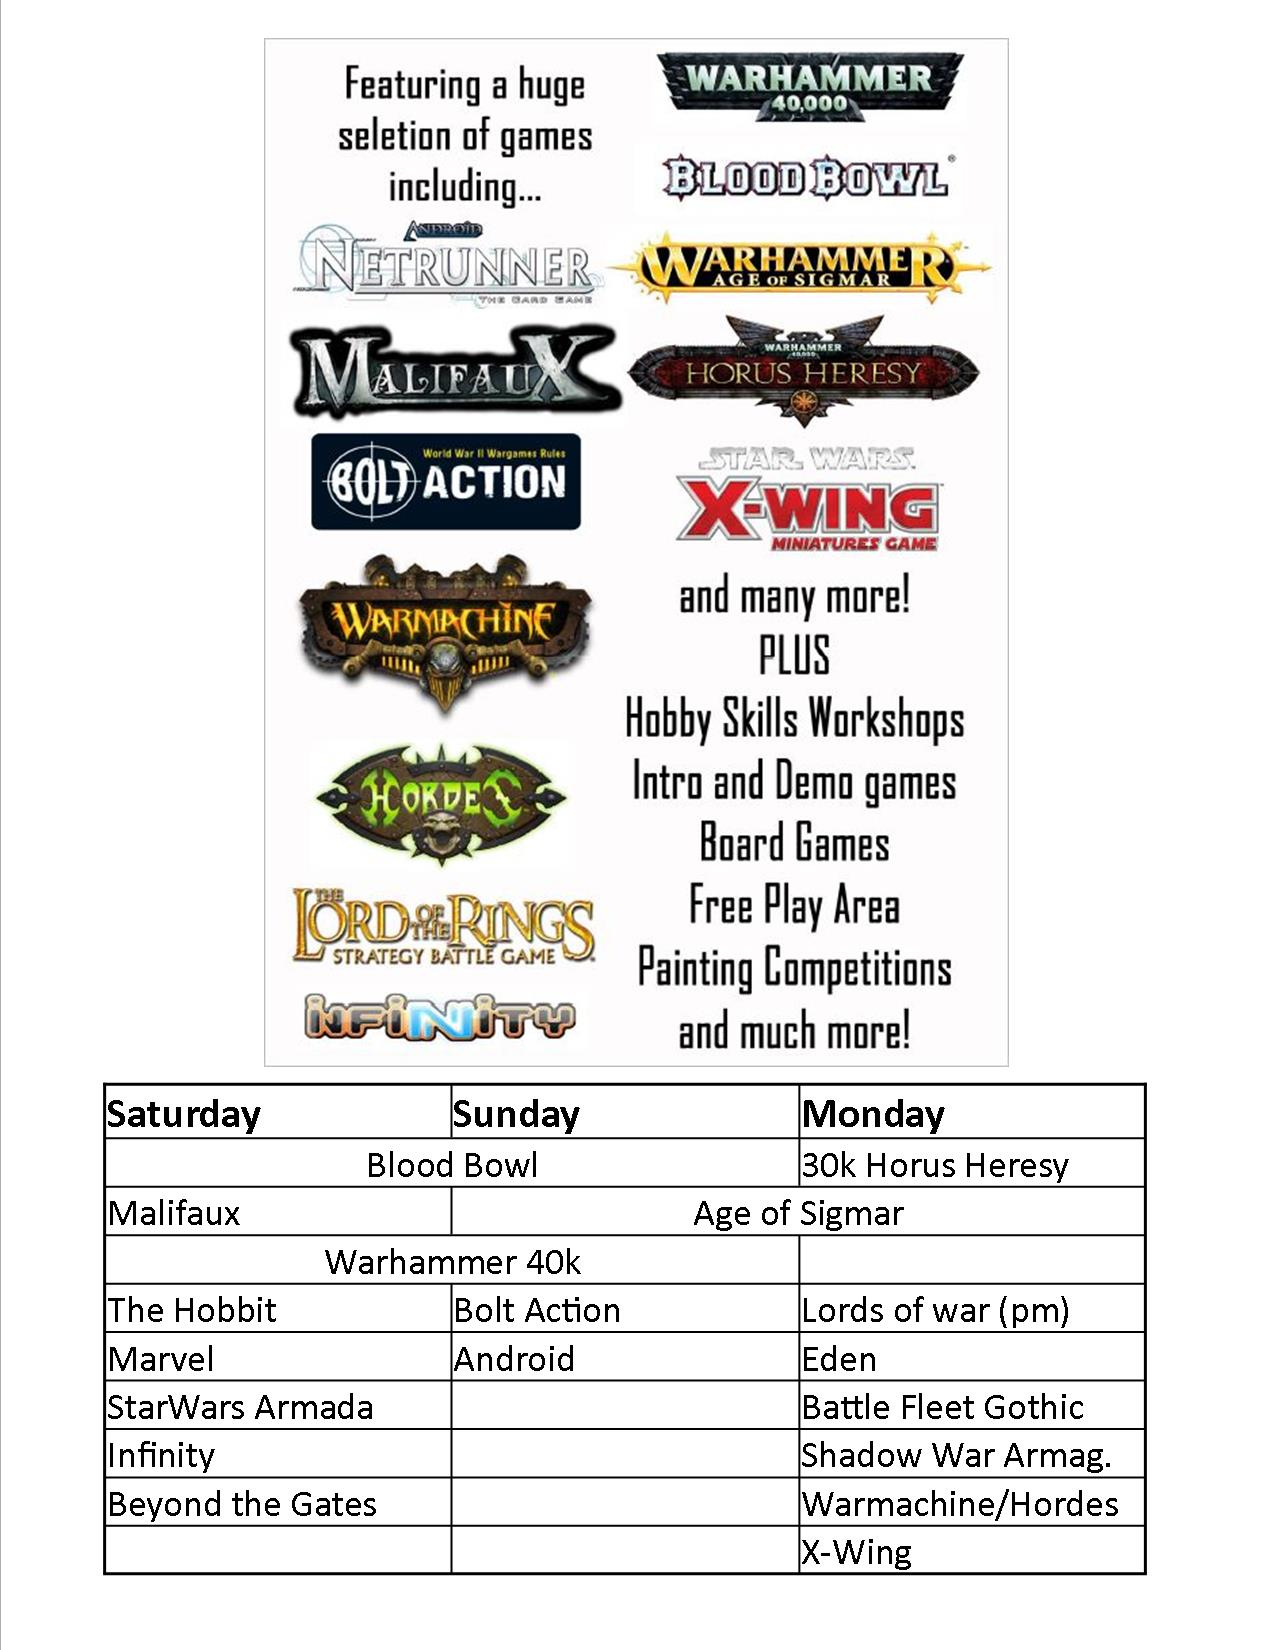 Featuring a huge selection of games: Warhammer 40k, AoS, Bloodbowl, Netrunner, Malifaus, Horus Heresy, Bolt Action, Xwing, Warmachine/Hordes, Lord of the rings, Infinity, plus many more. PLUS hobby skills workshops, intro and demo games, board games, free play area, painting comps and much more!